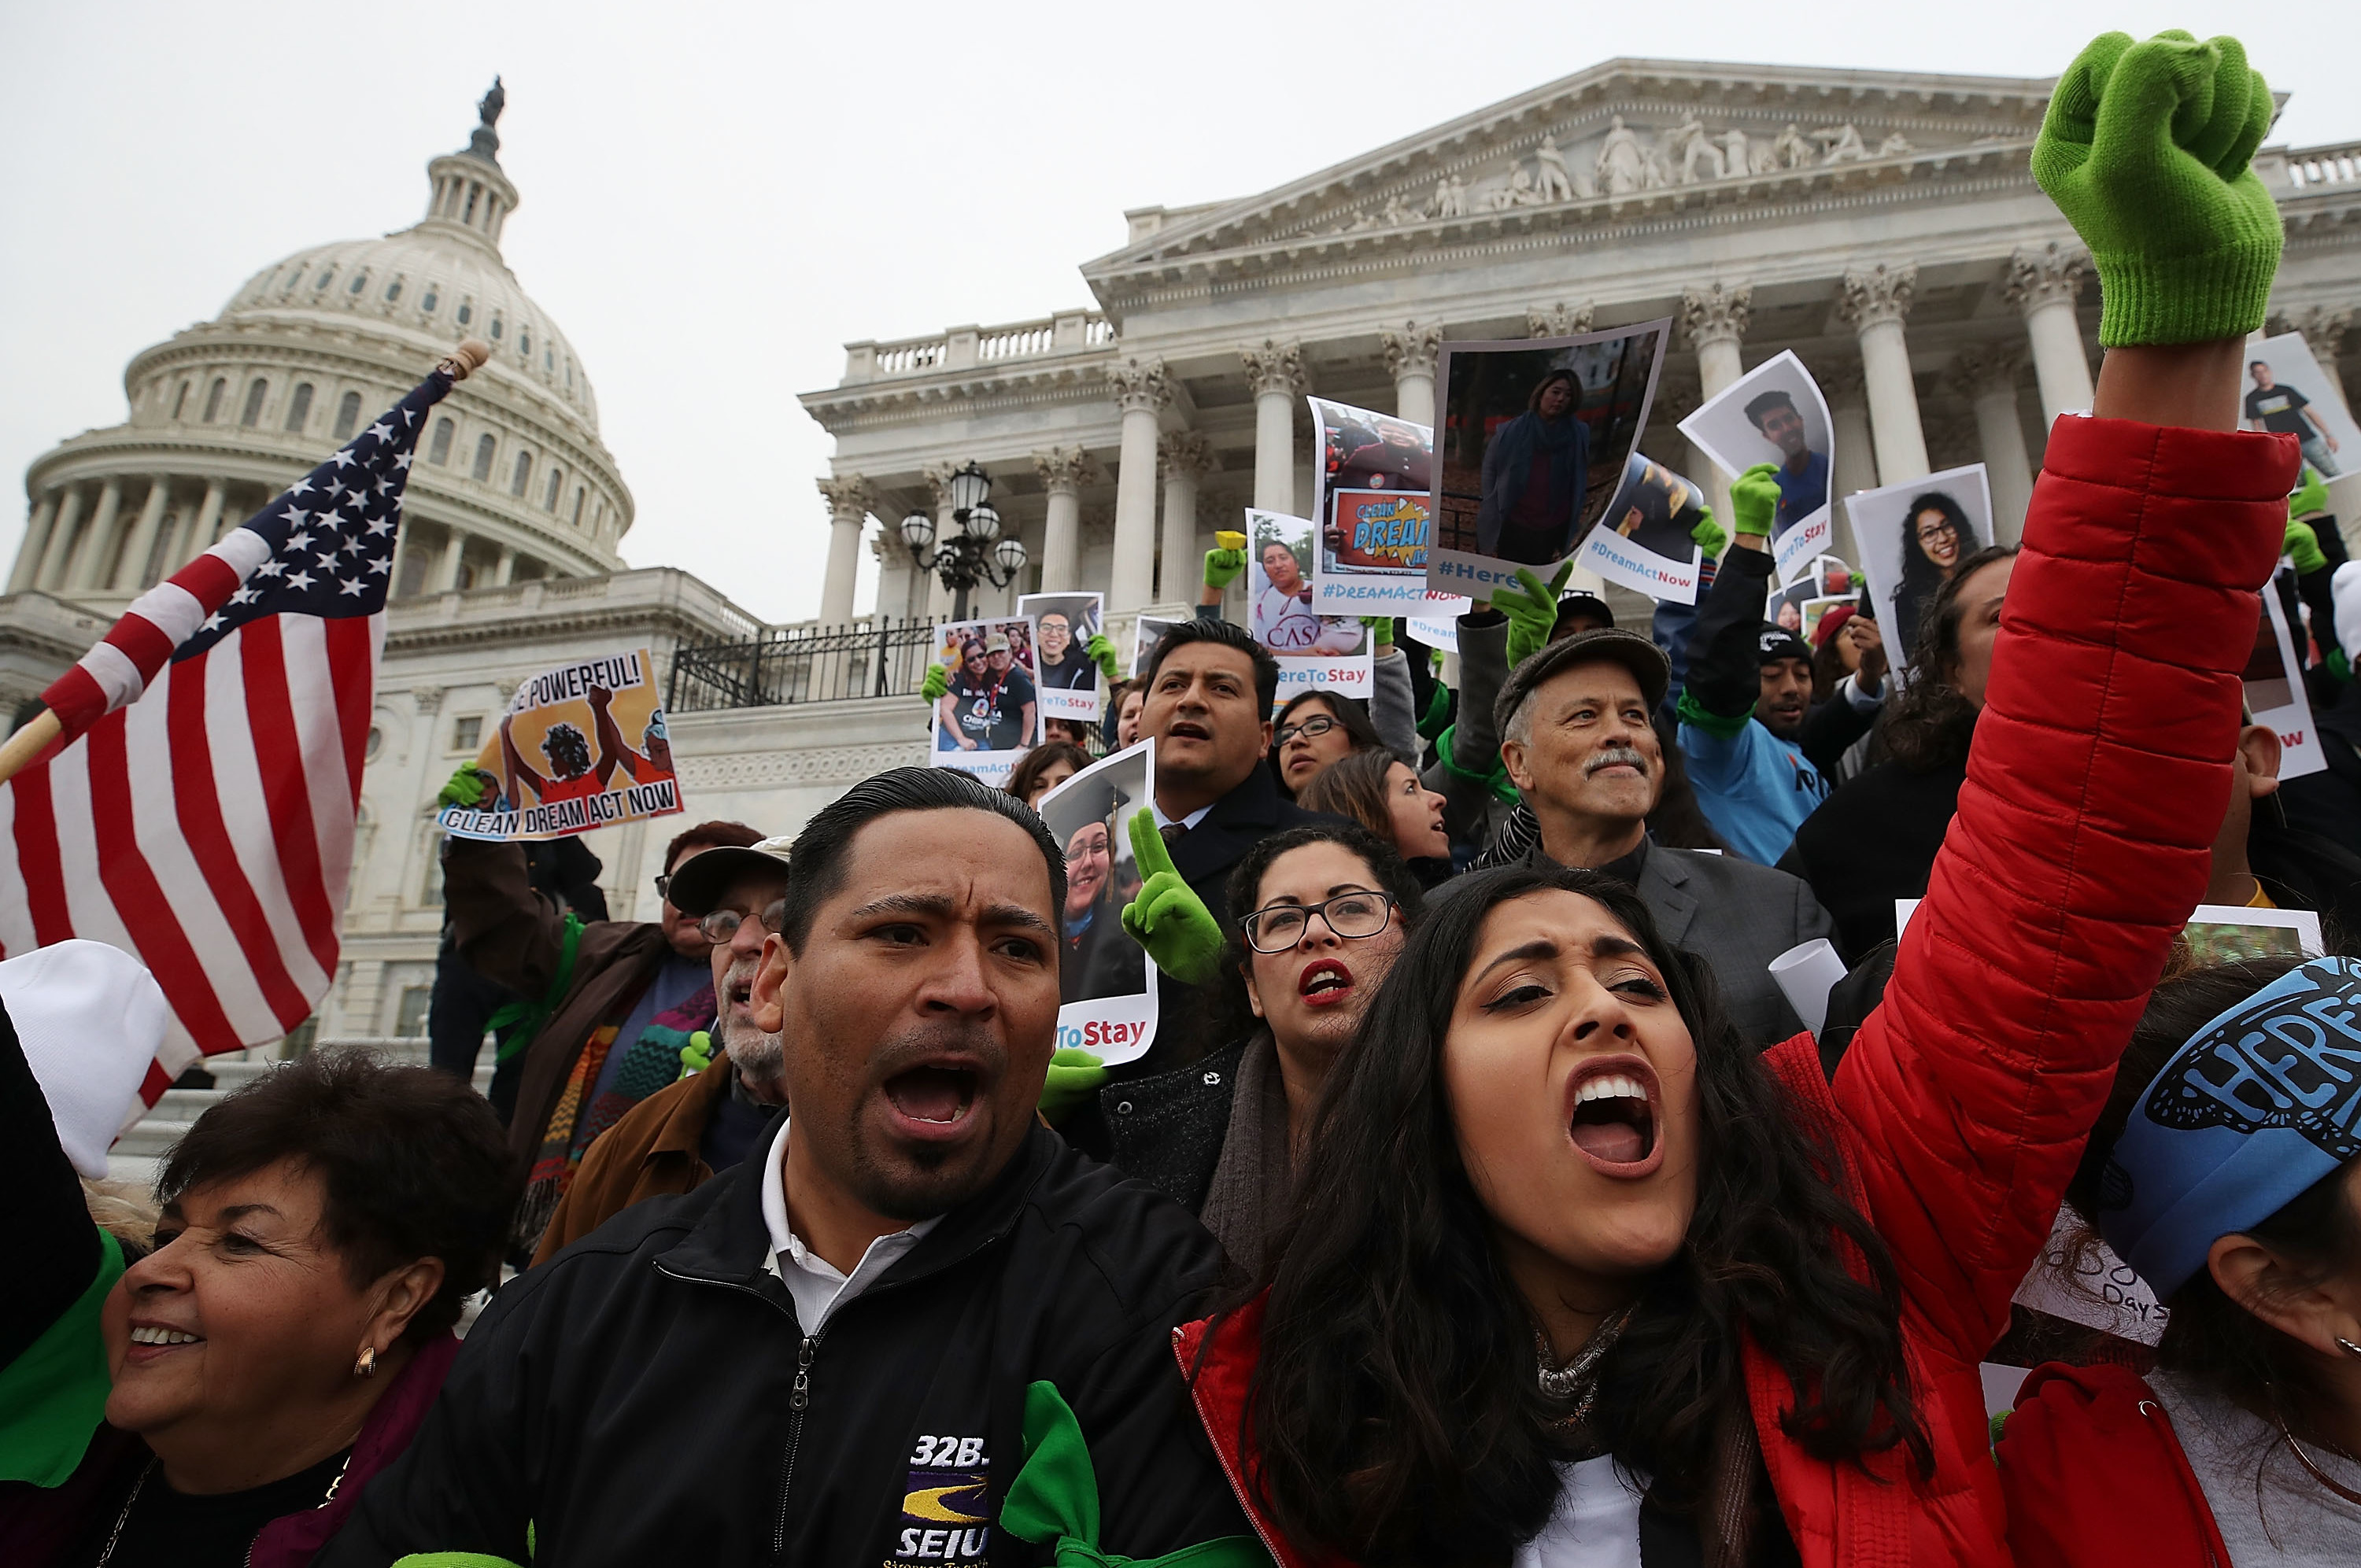 File photo of December 18, 2017, people who call themselves DREAMers, protest in front of the U.S. Capitol to urge Congress to pass a DREAM Act.